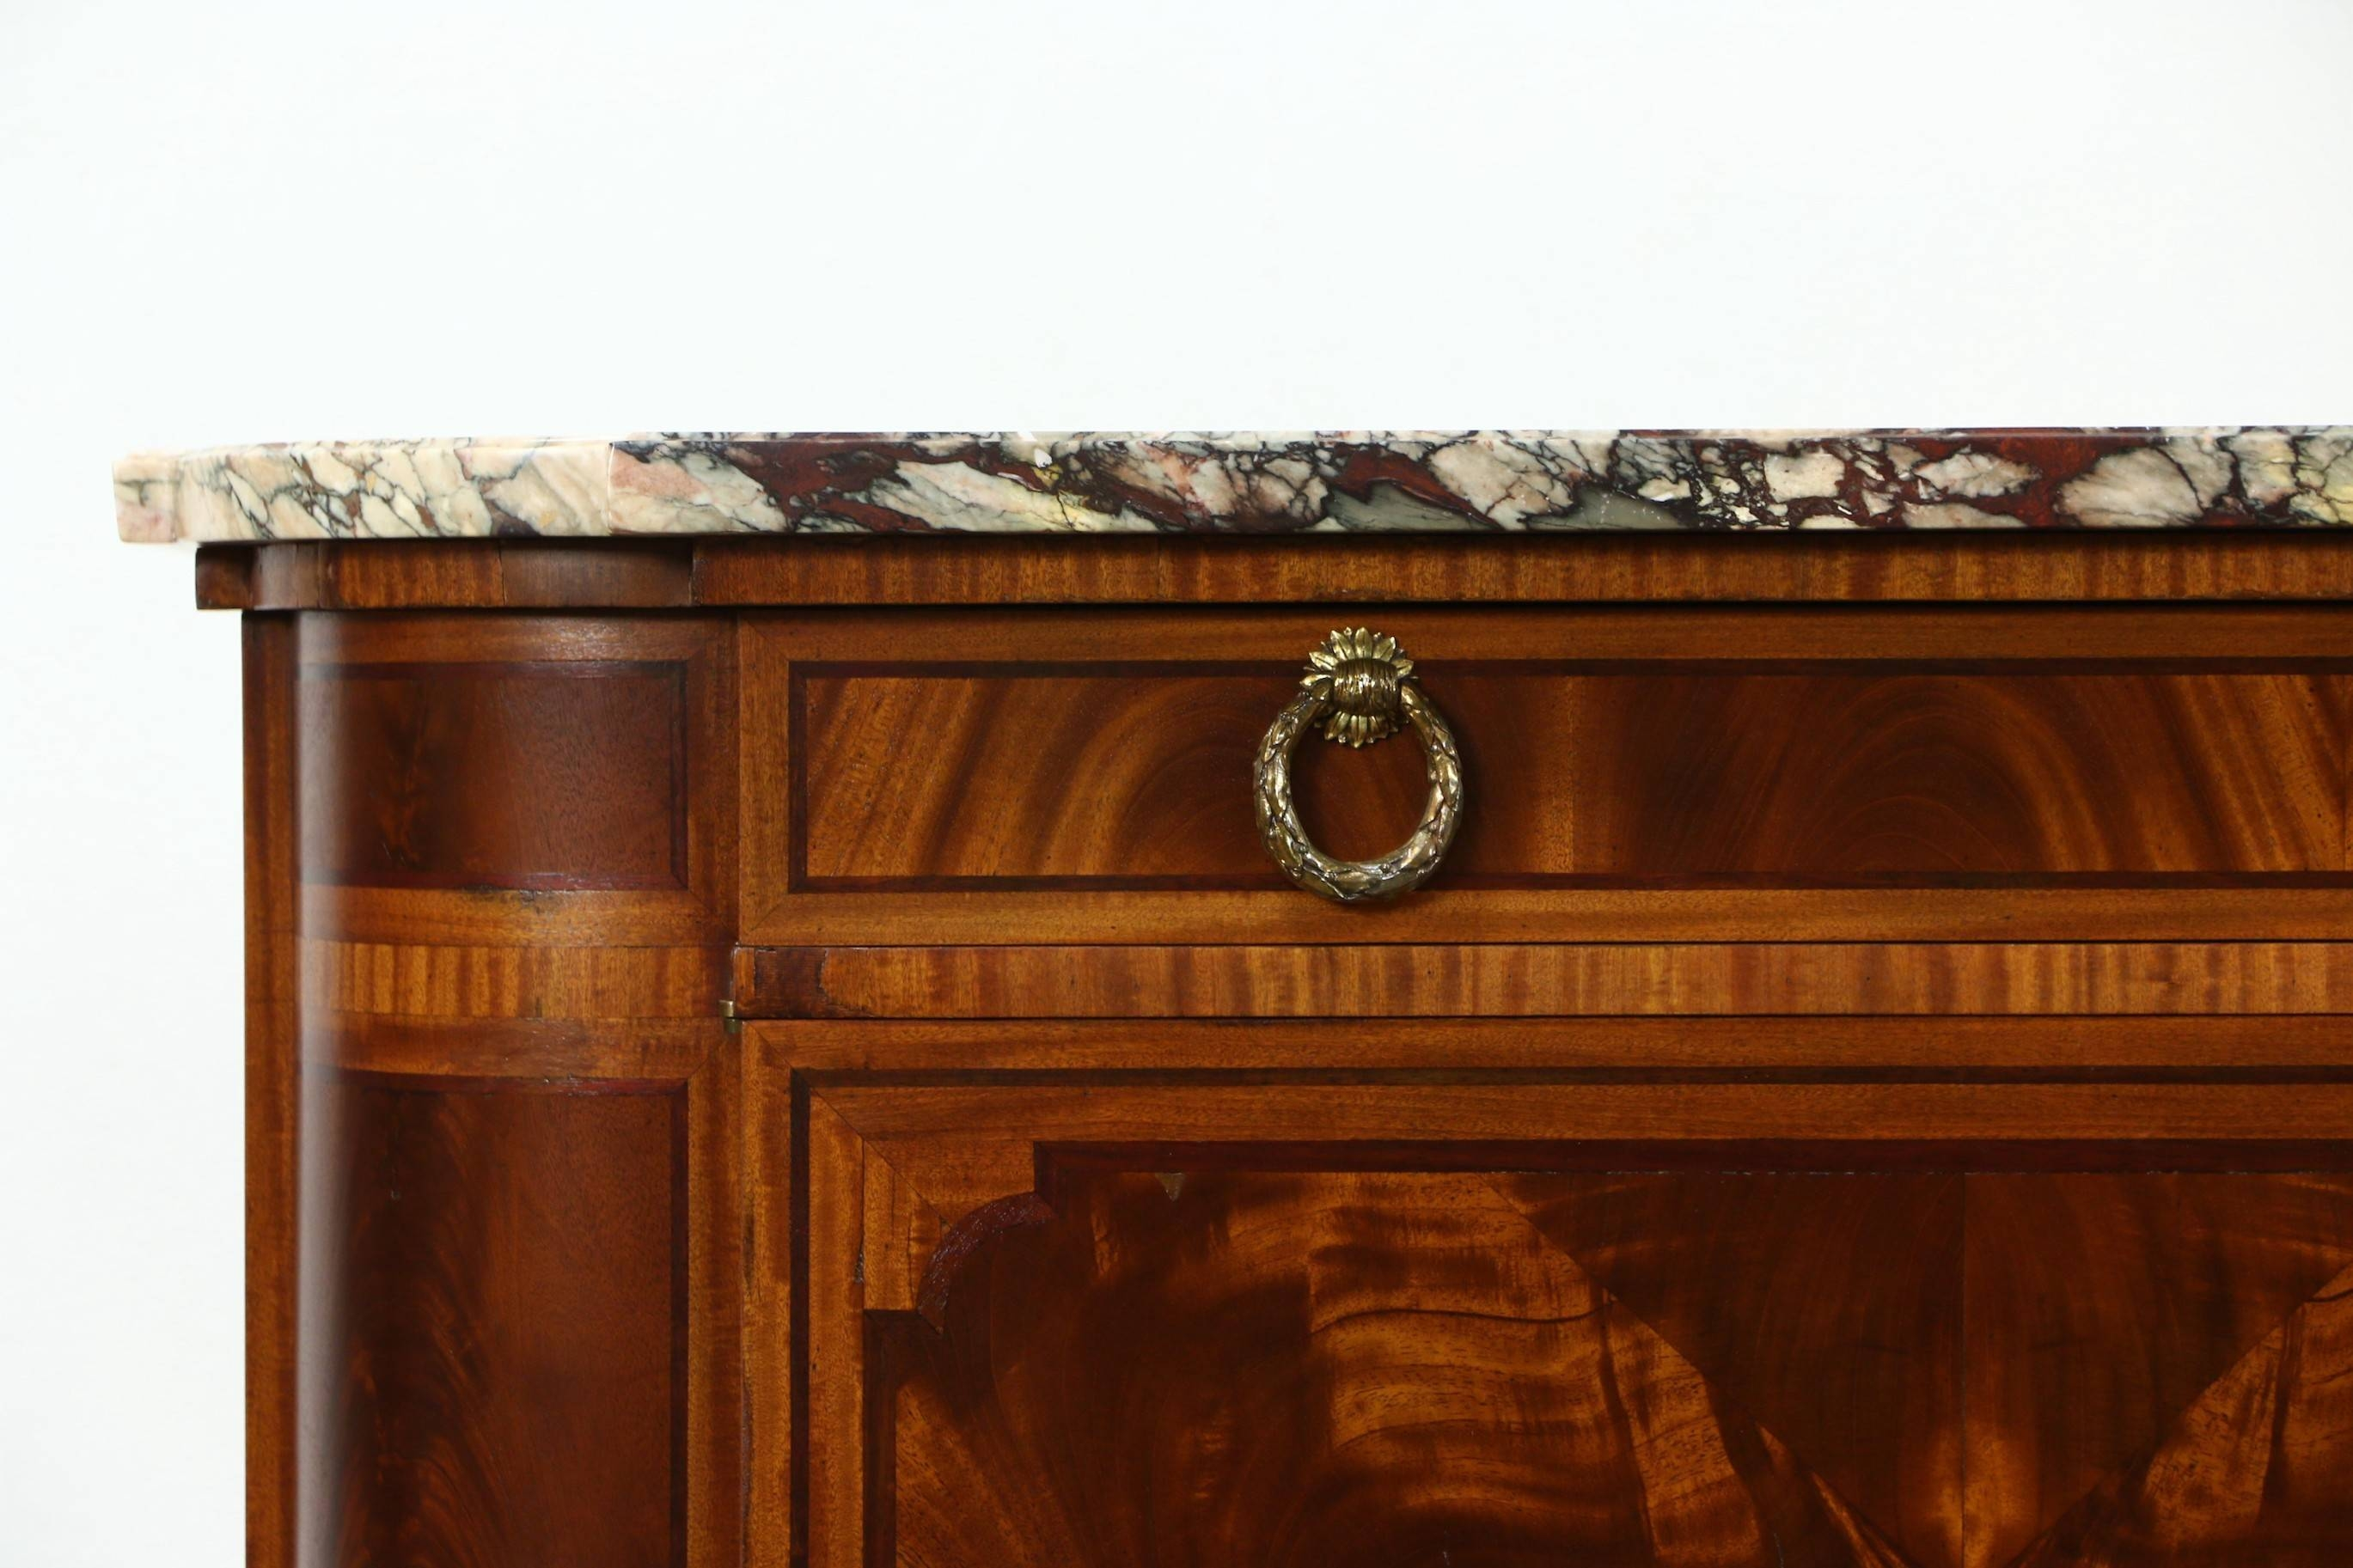 Sold - Marble Top Paris France Signed 1930 Vintage Sideboard in Marble Top Sideboards (Image 11 of 15)